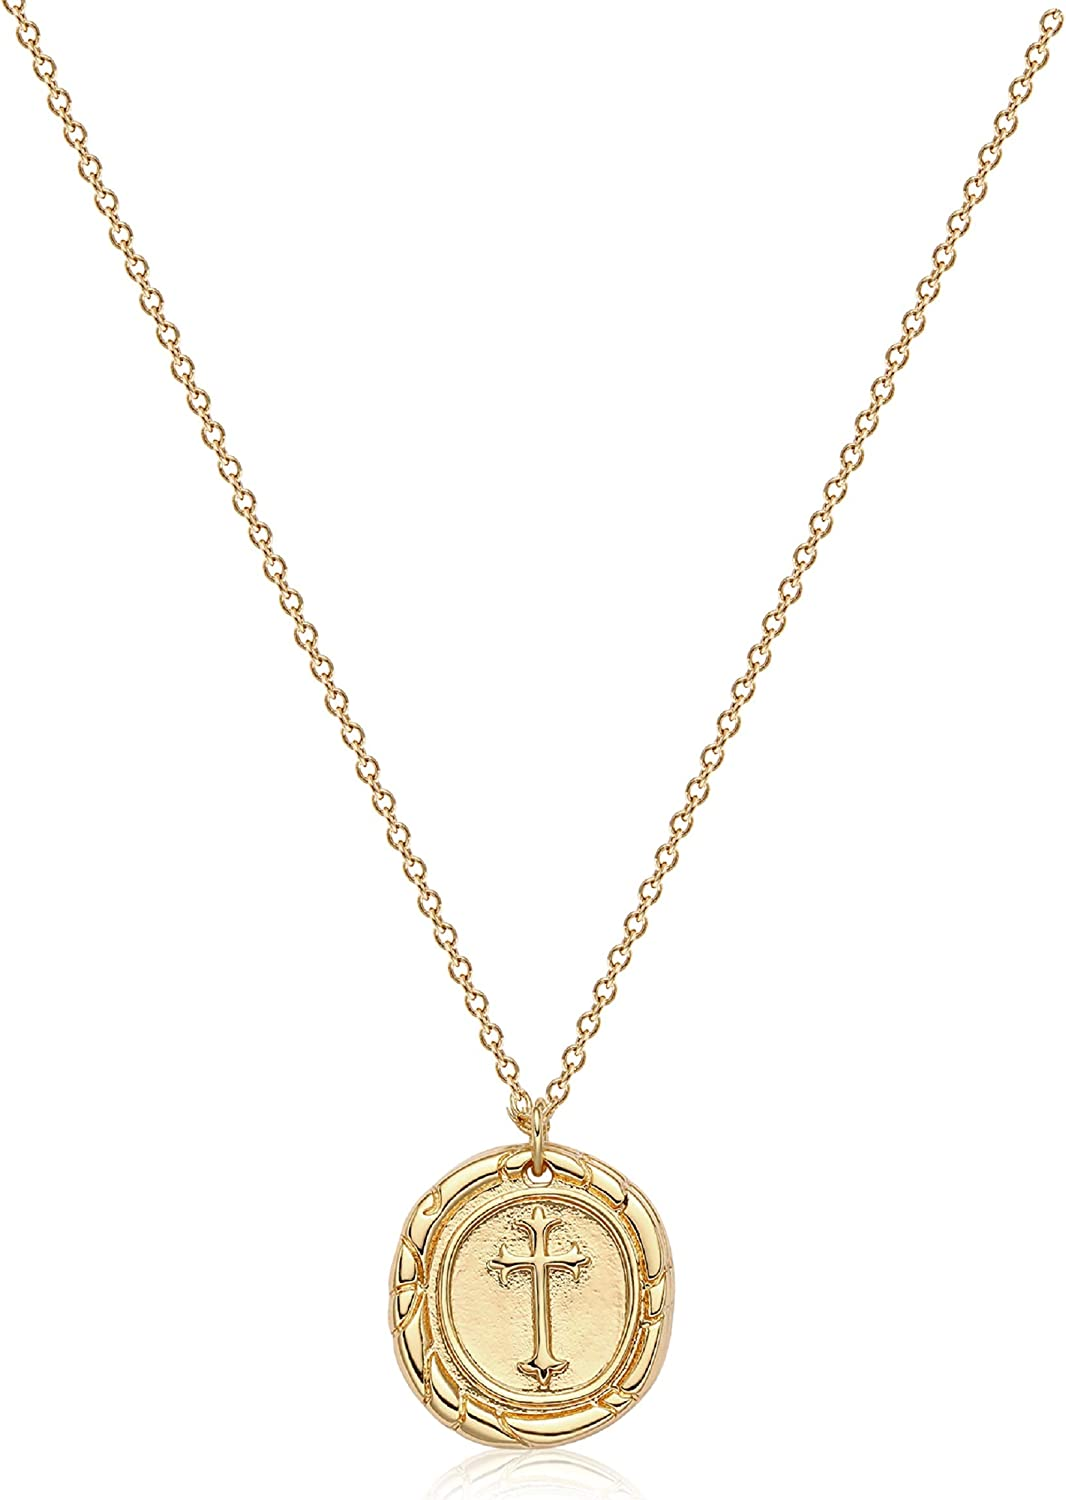 Befettly Coin Pendant Necklaces for Women Dainty 14k Gold Chain Necklace Jewelry Plated Cross Fish Moon Round Choker